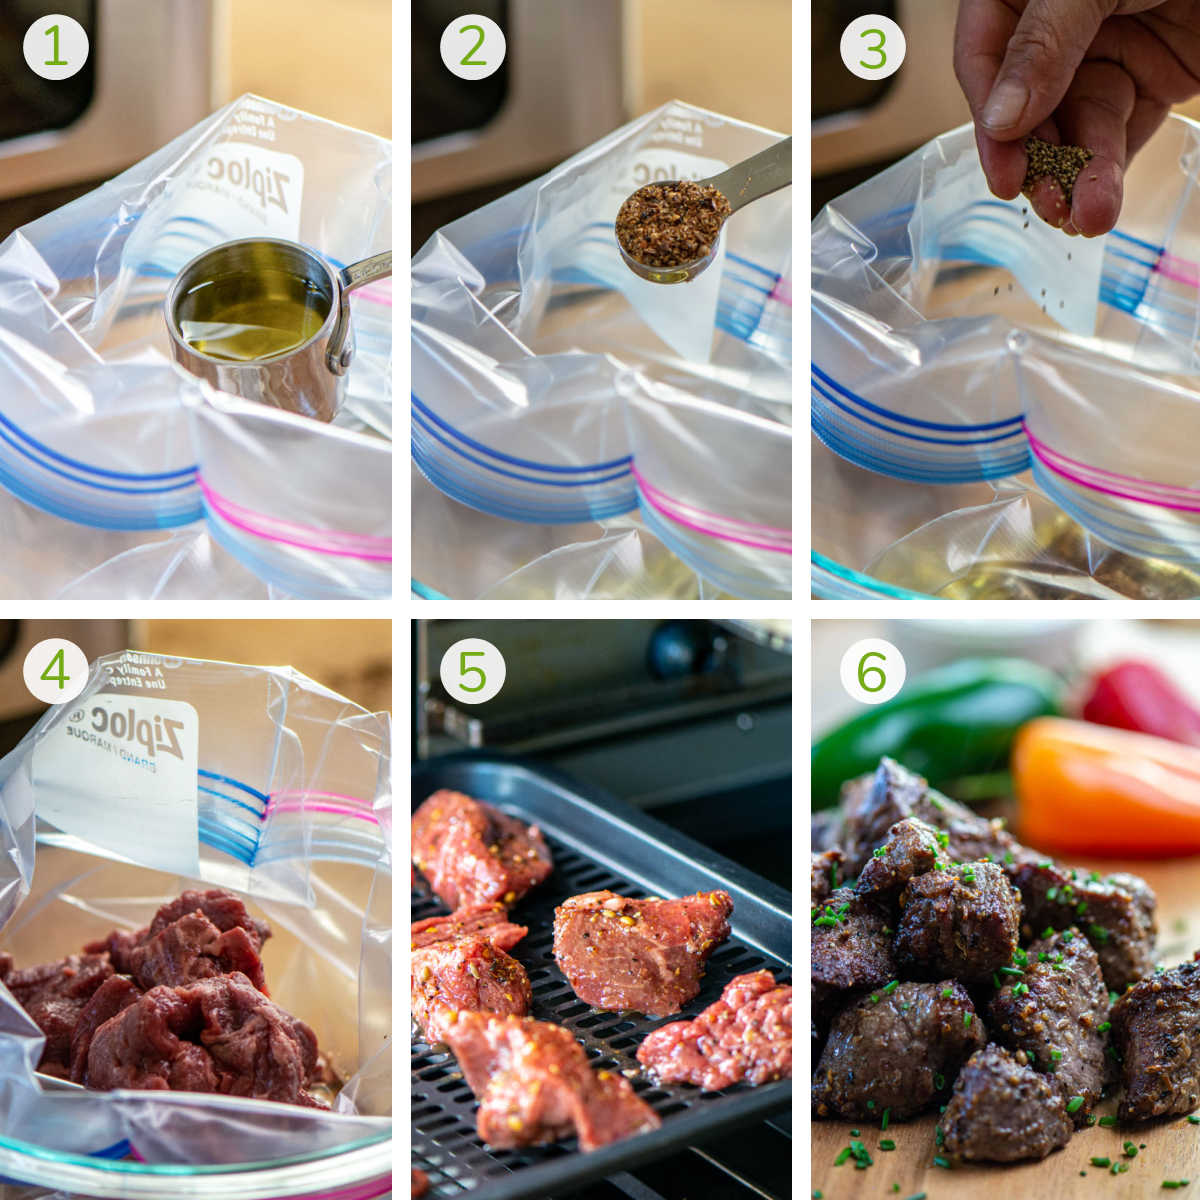 process photos showing adding the oil and seasonings to a Ziploc bag, adding the steak tips to the air fryer and fully cooked.